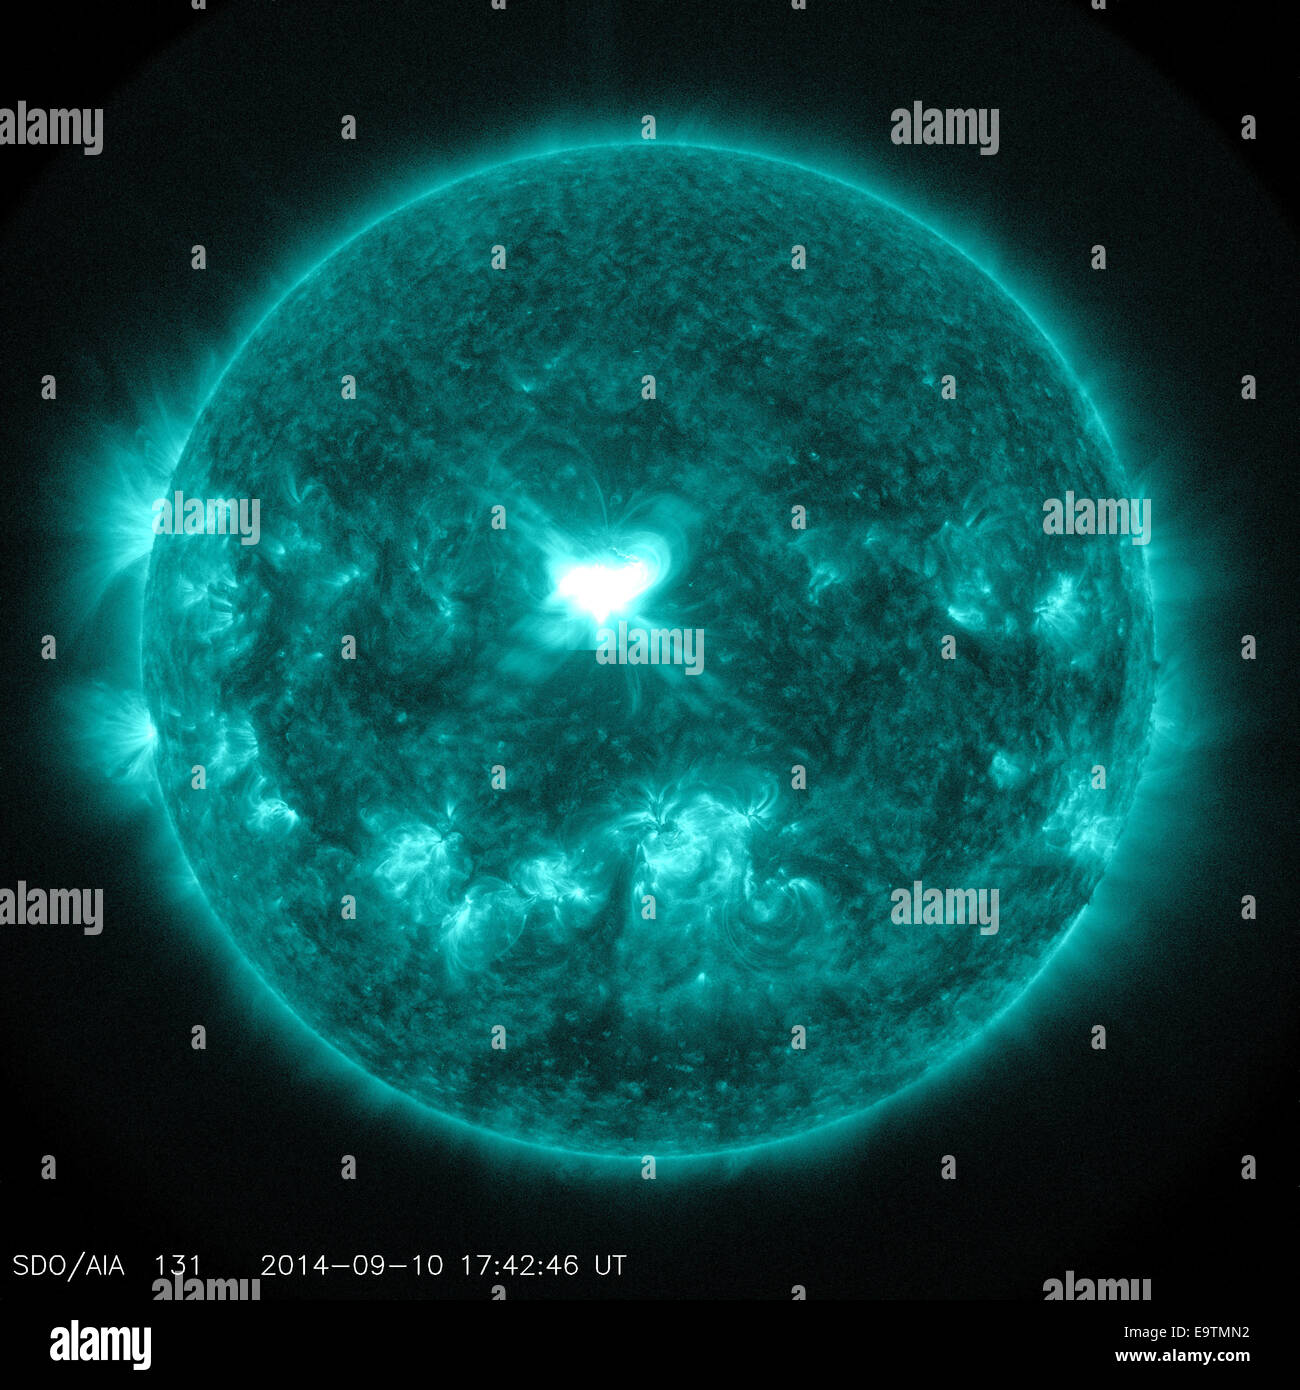 A Significant Flare Surges Off the Sun - Stock Image